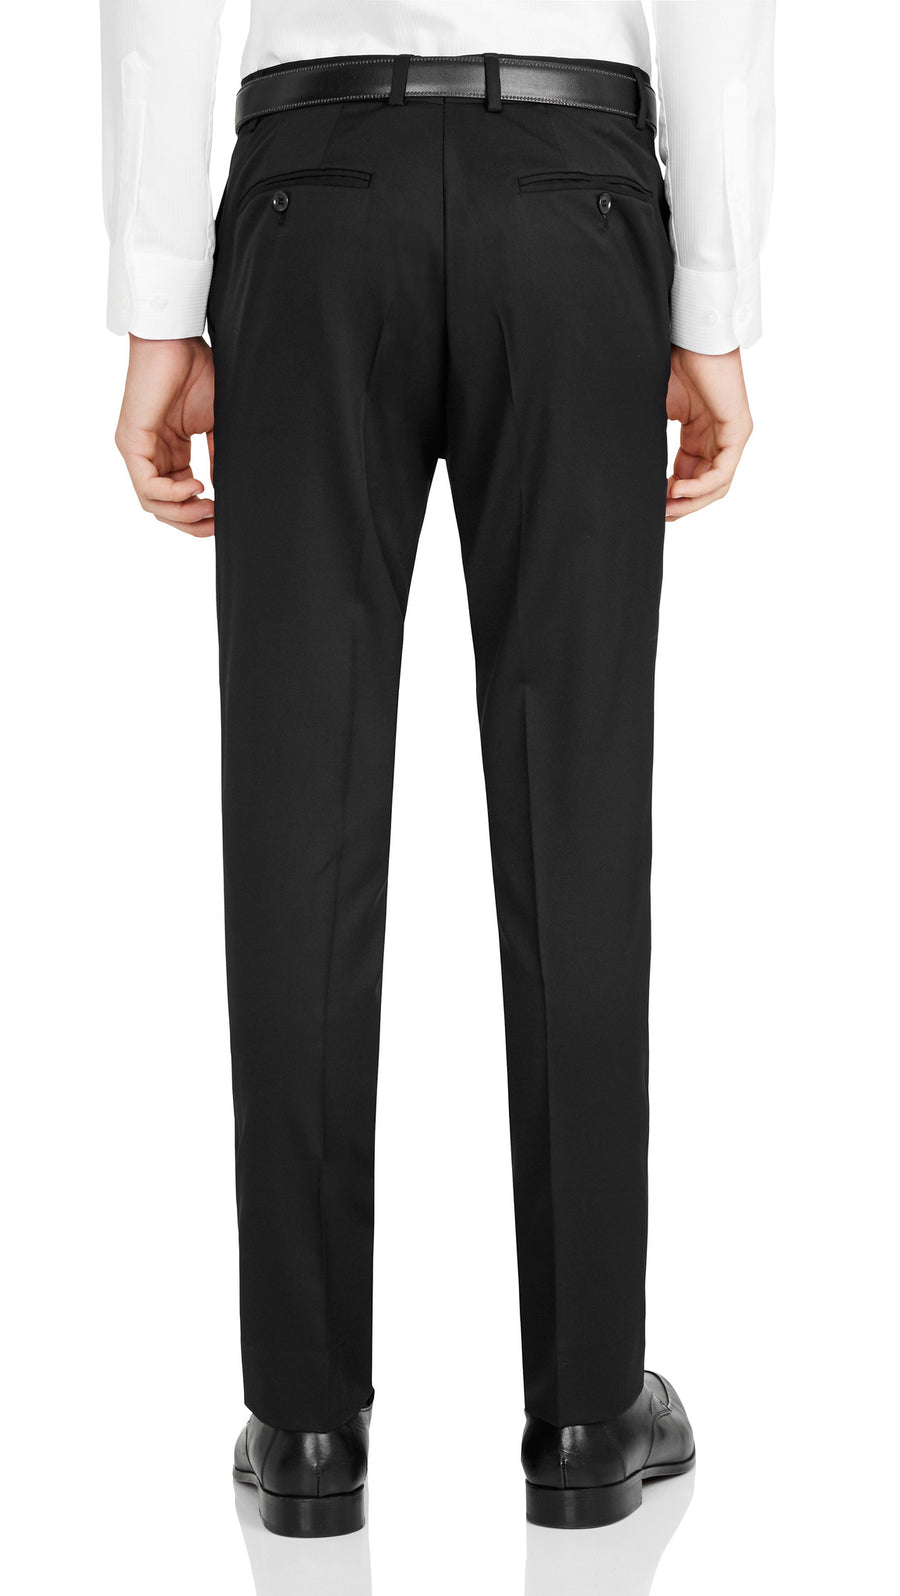 Nicholby & Harvard Dress Trousers in Black - Ron Bennett Menswear  - 1